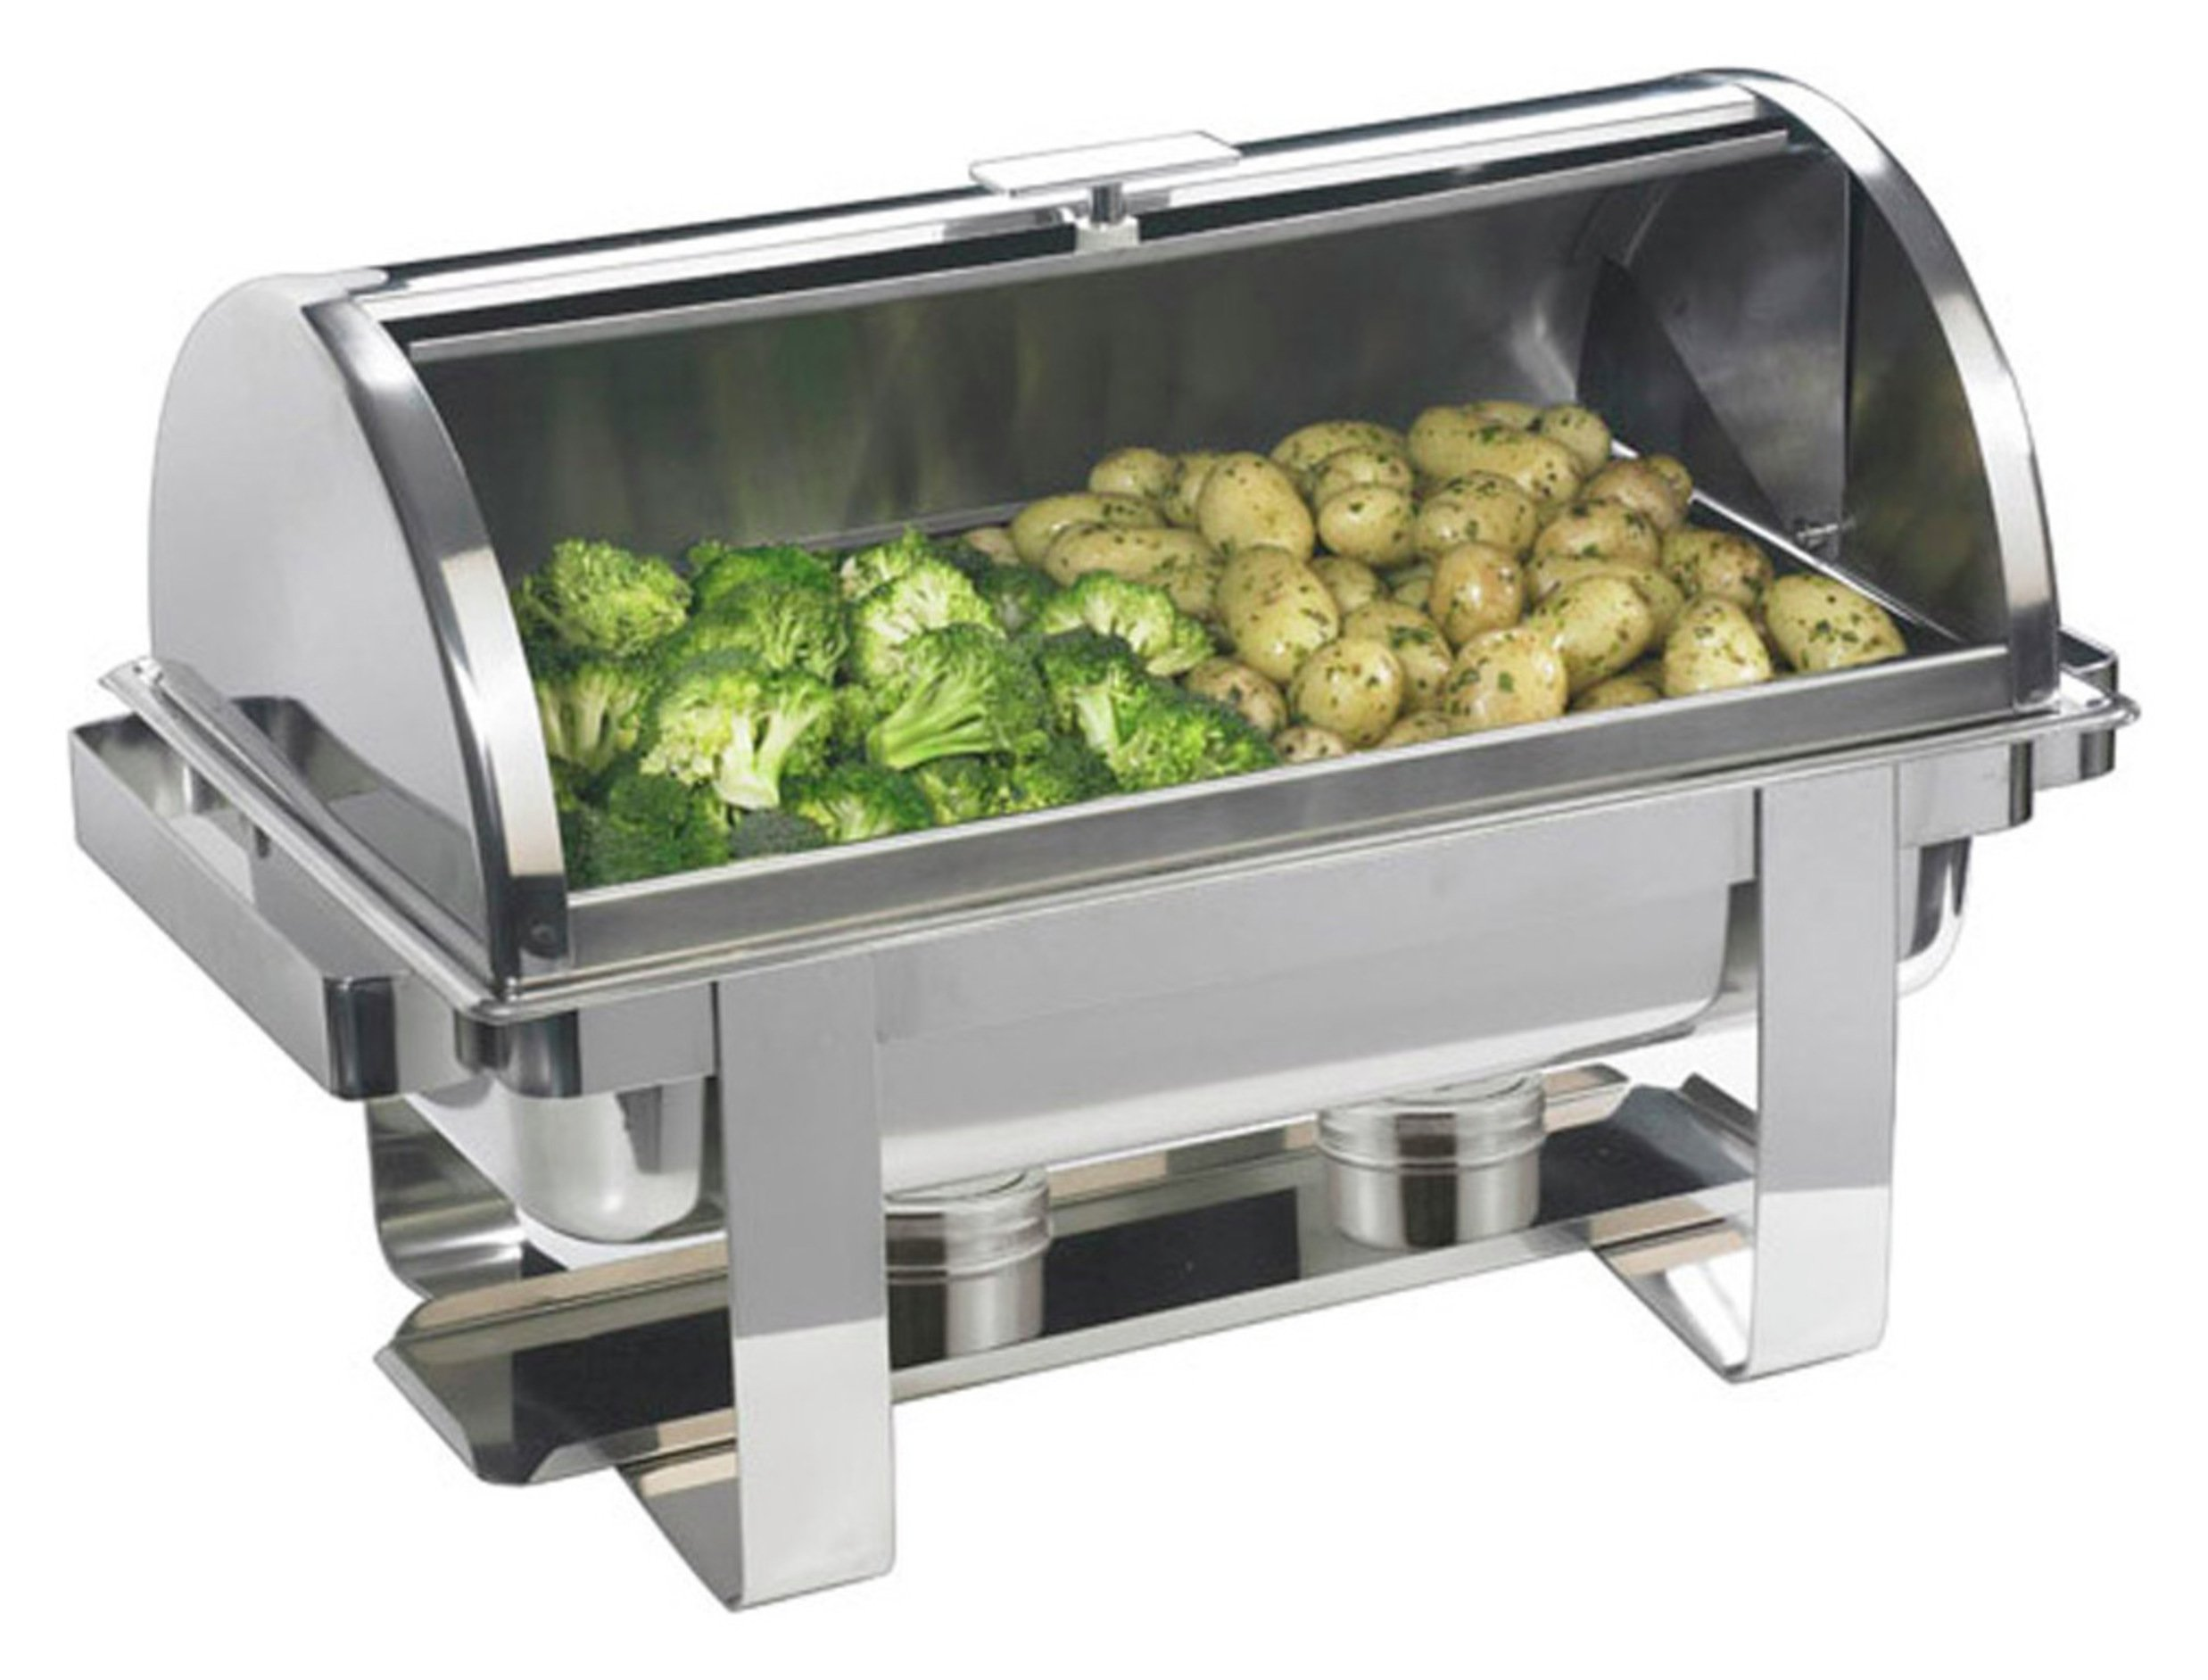 Zodiac 8.5 Litre Roll Top Chafing Dish